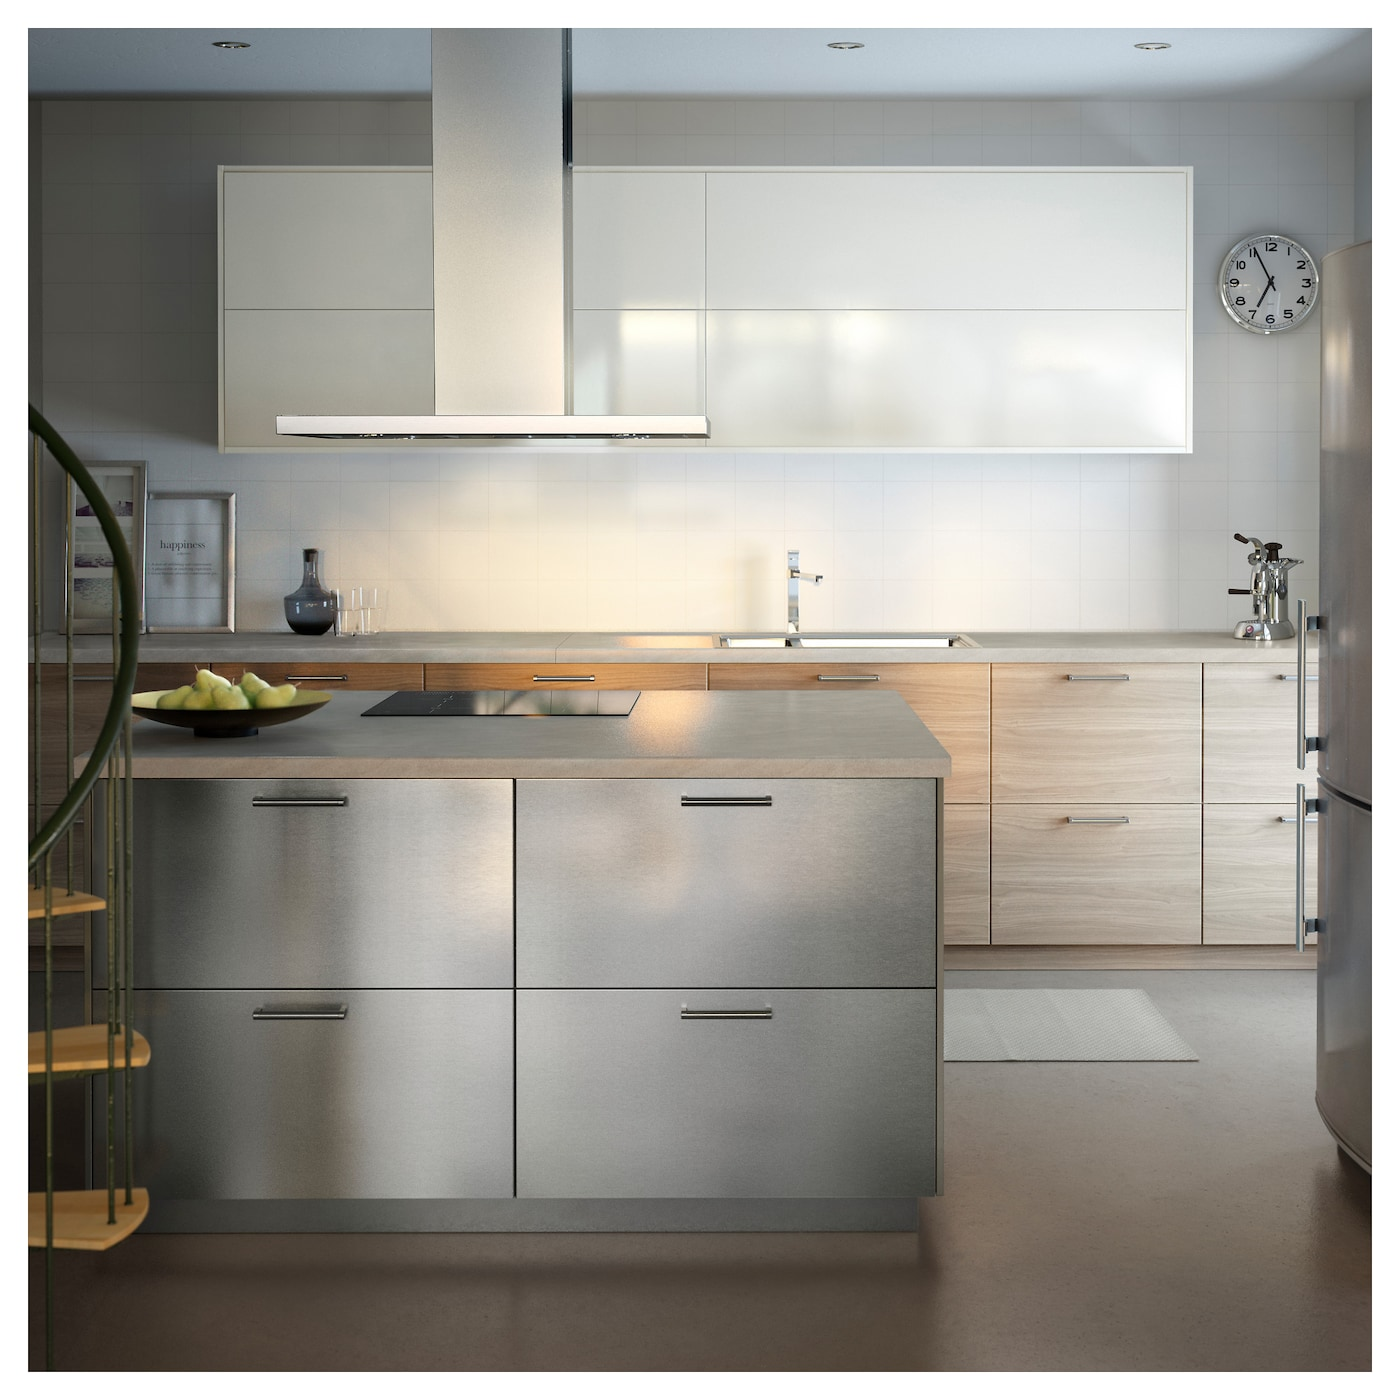 Ikea Kitchen Showroom: GREVSTA Door Stainless Steel 40 X 80 Cm